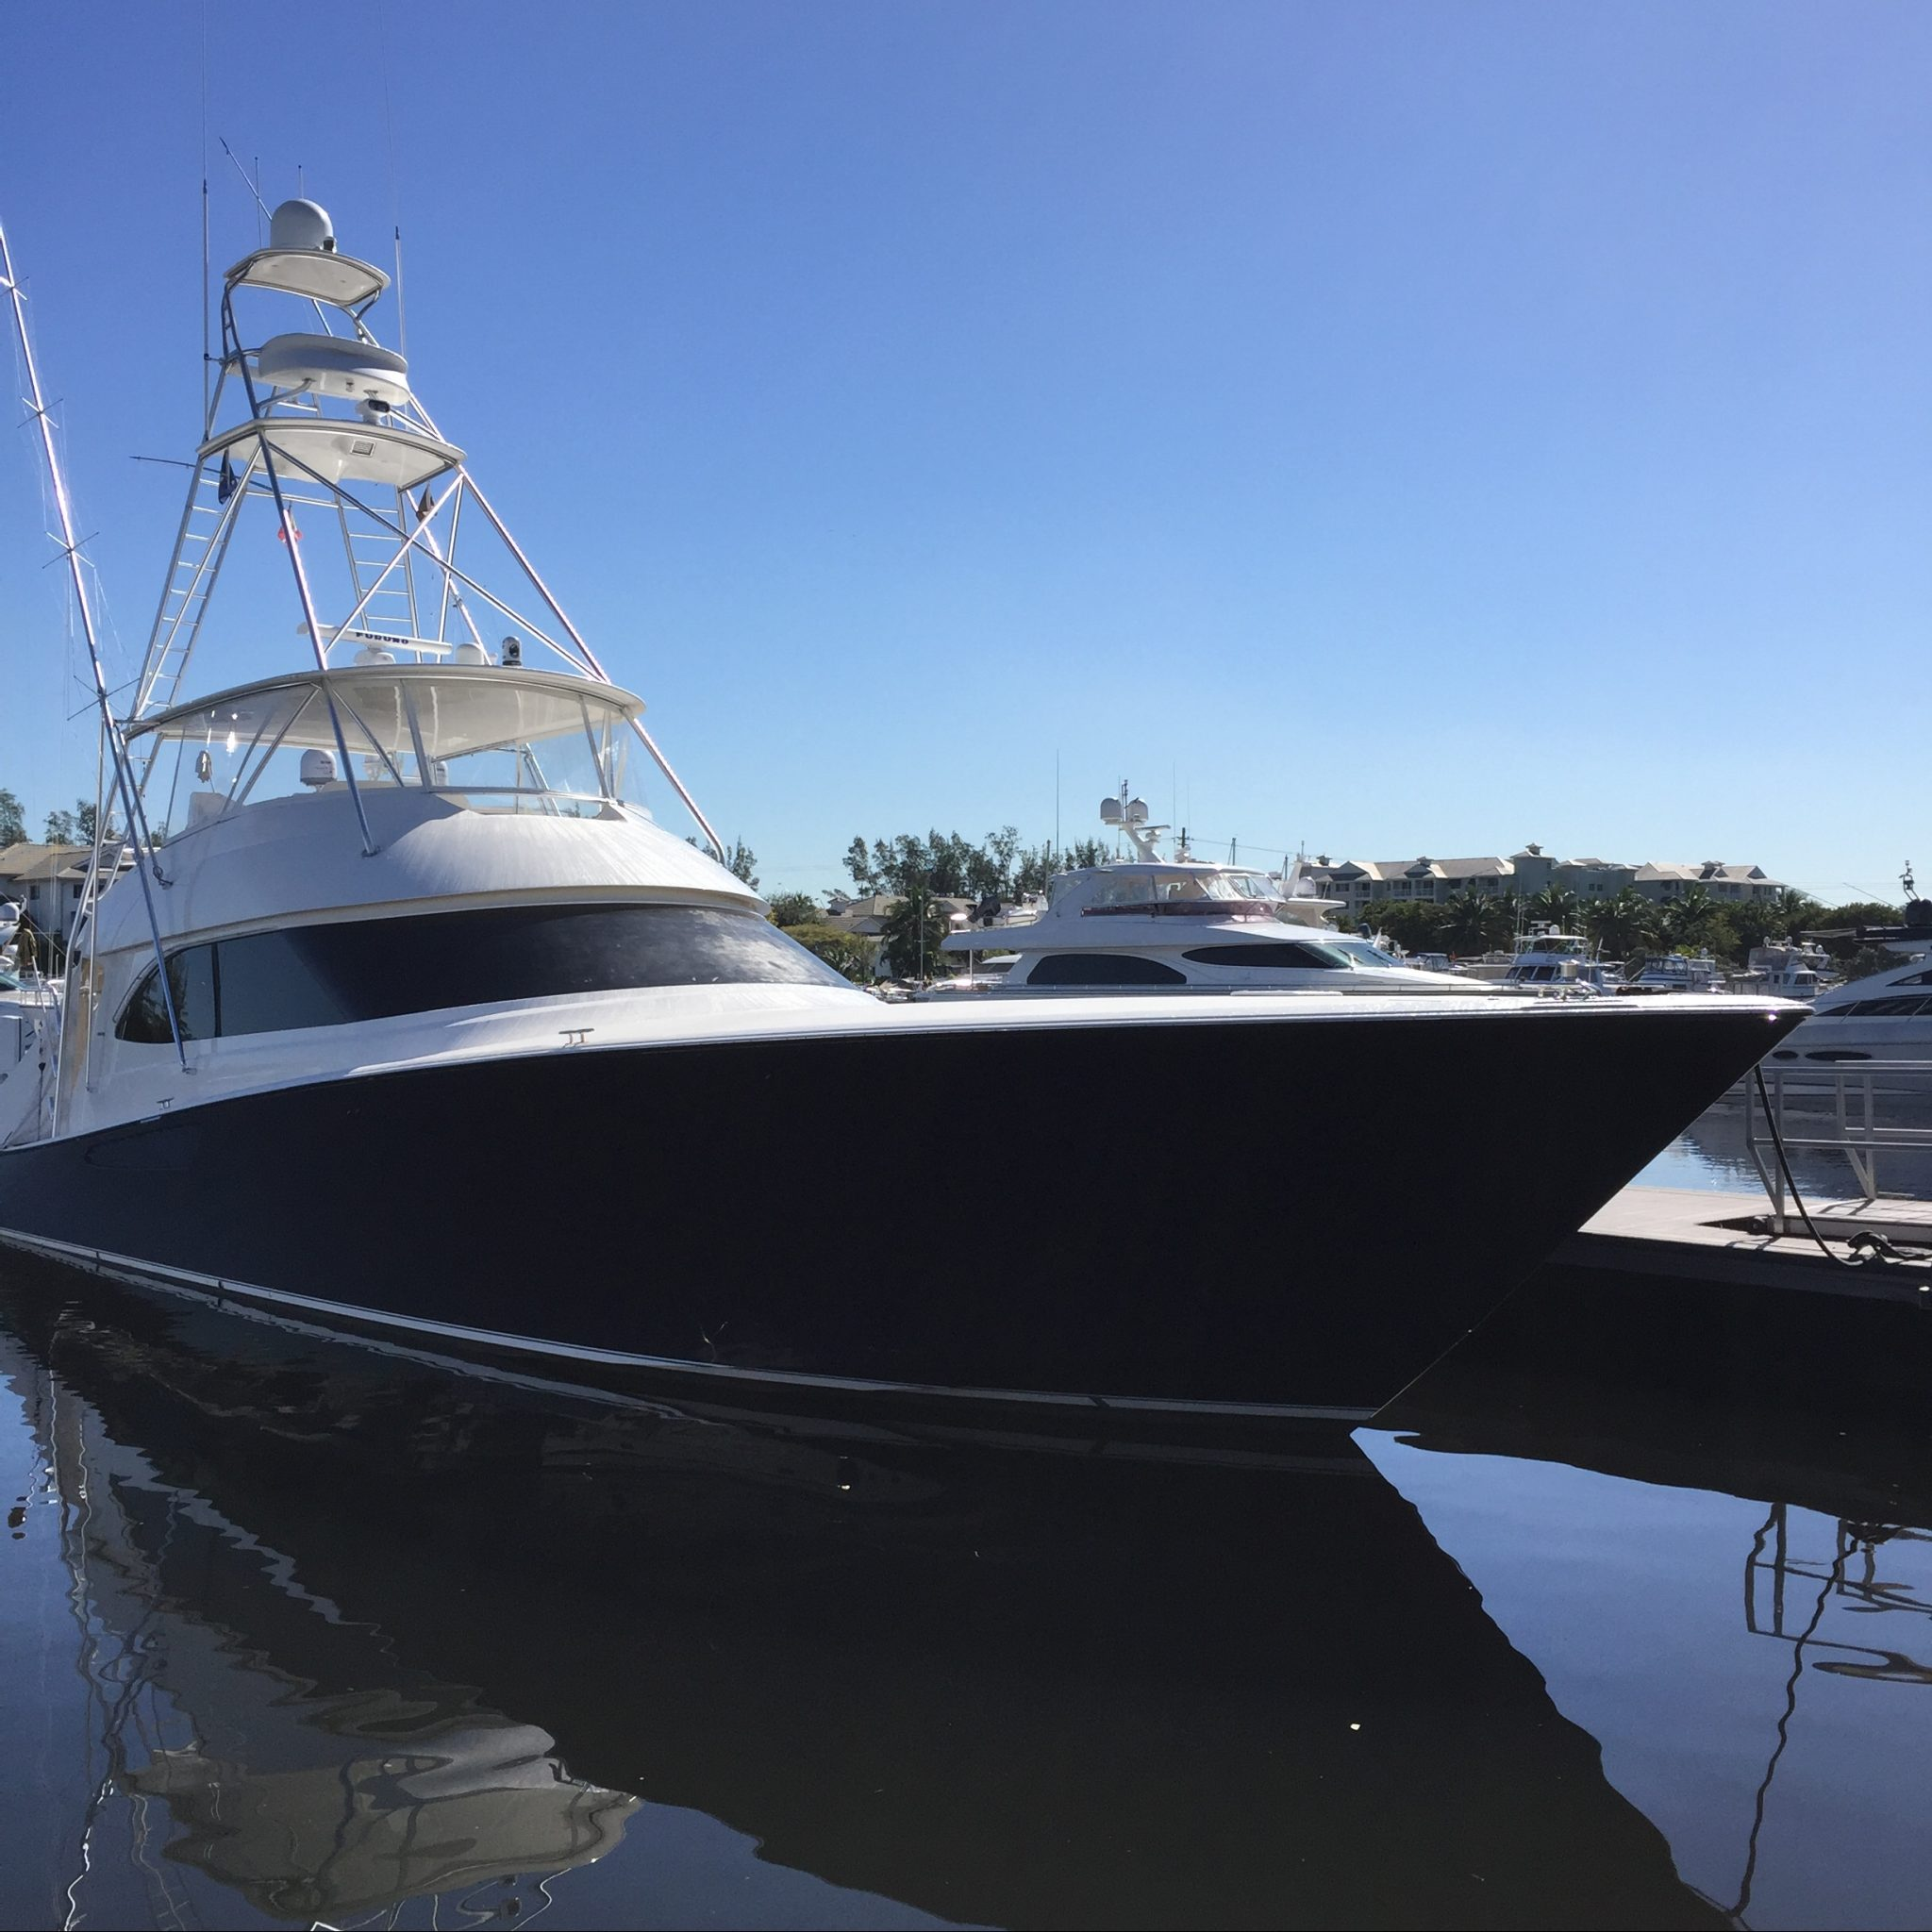 MARINA 110' WEST DOCK 5